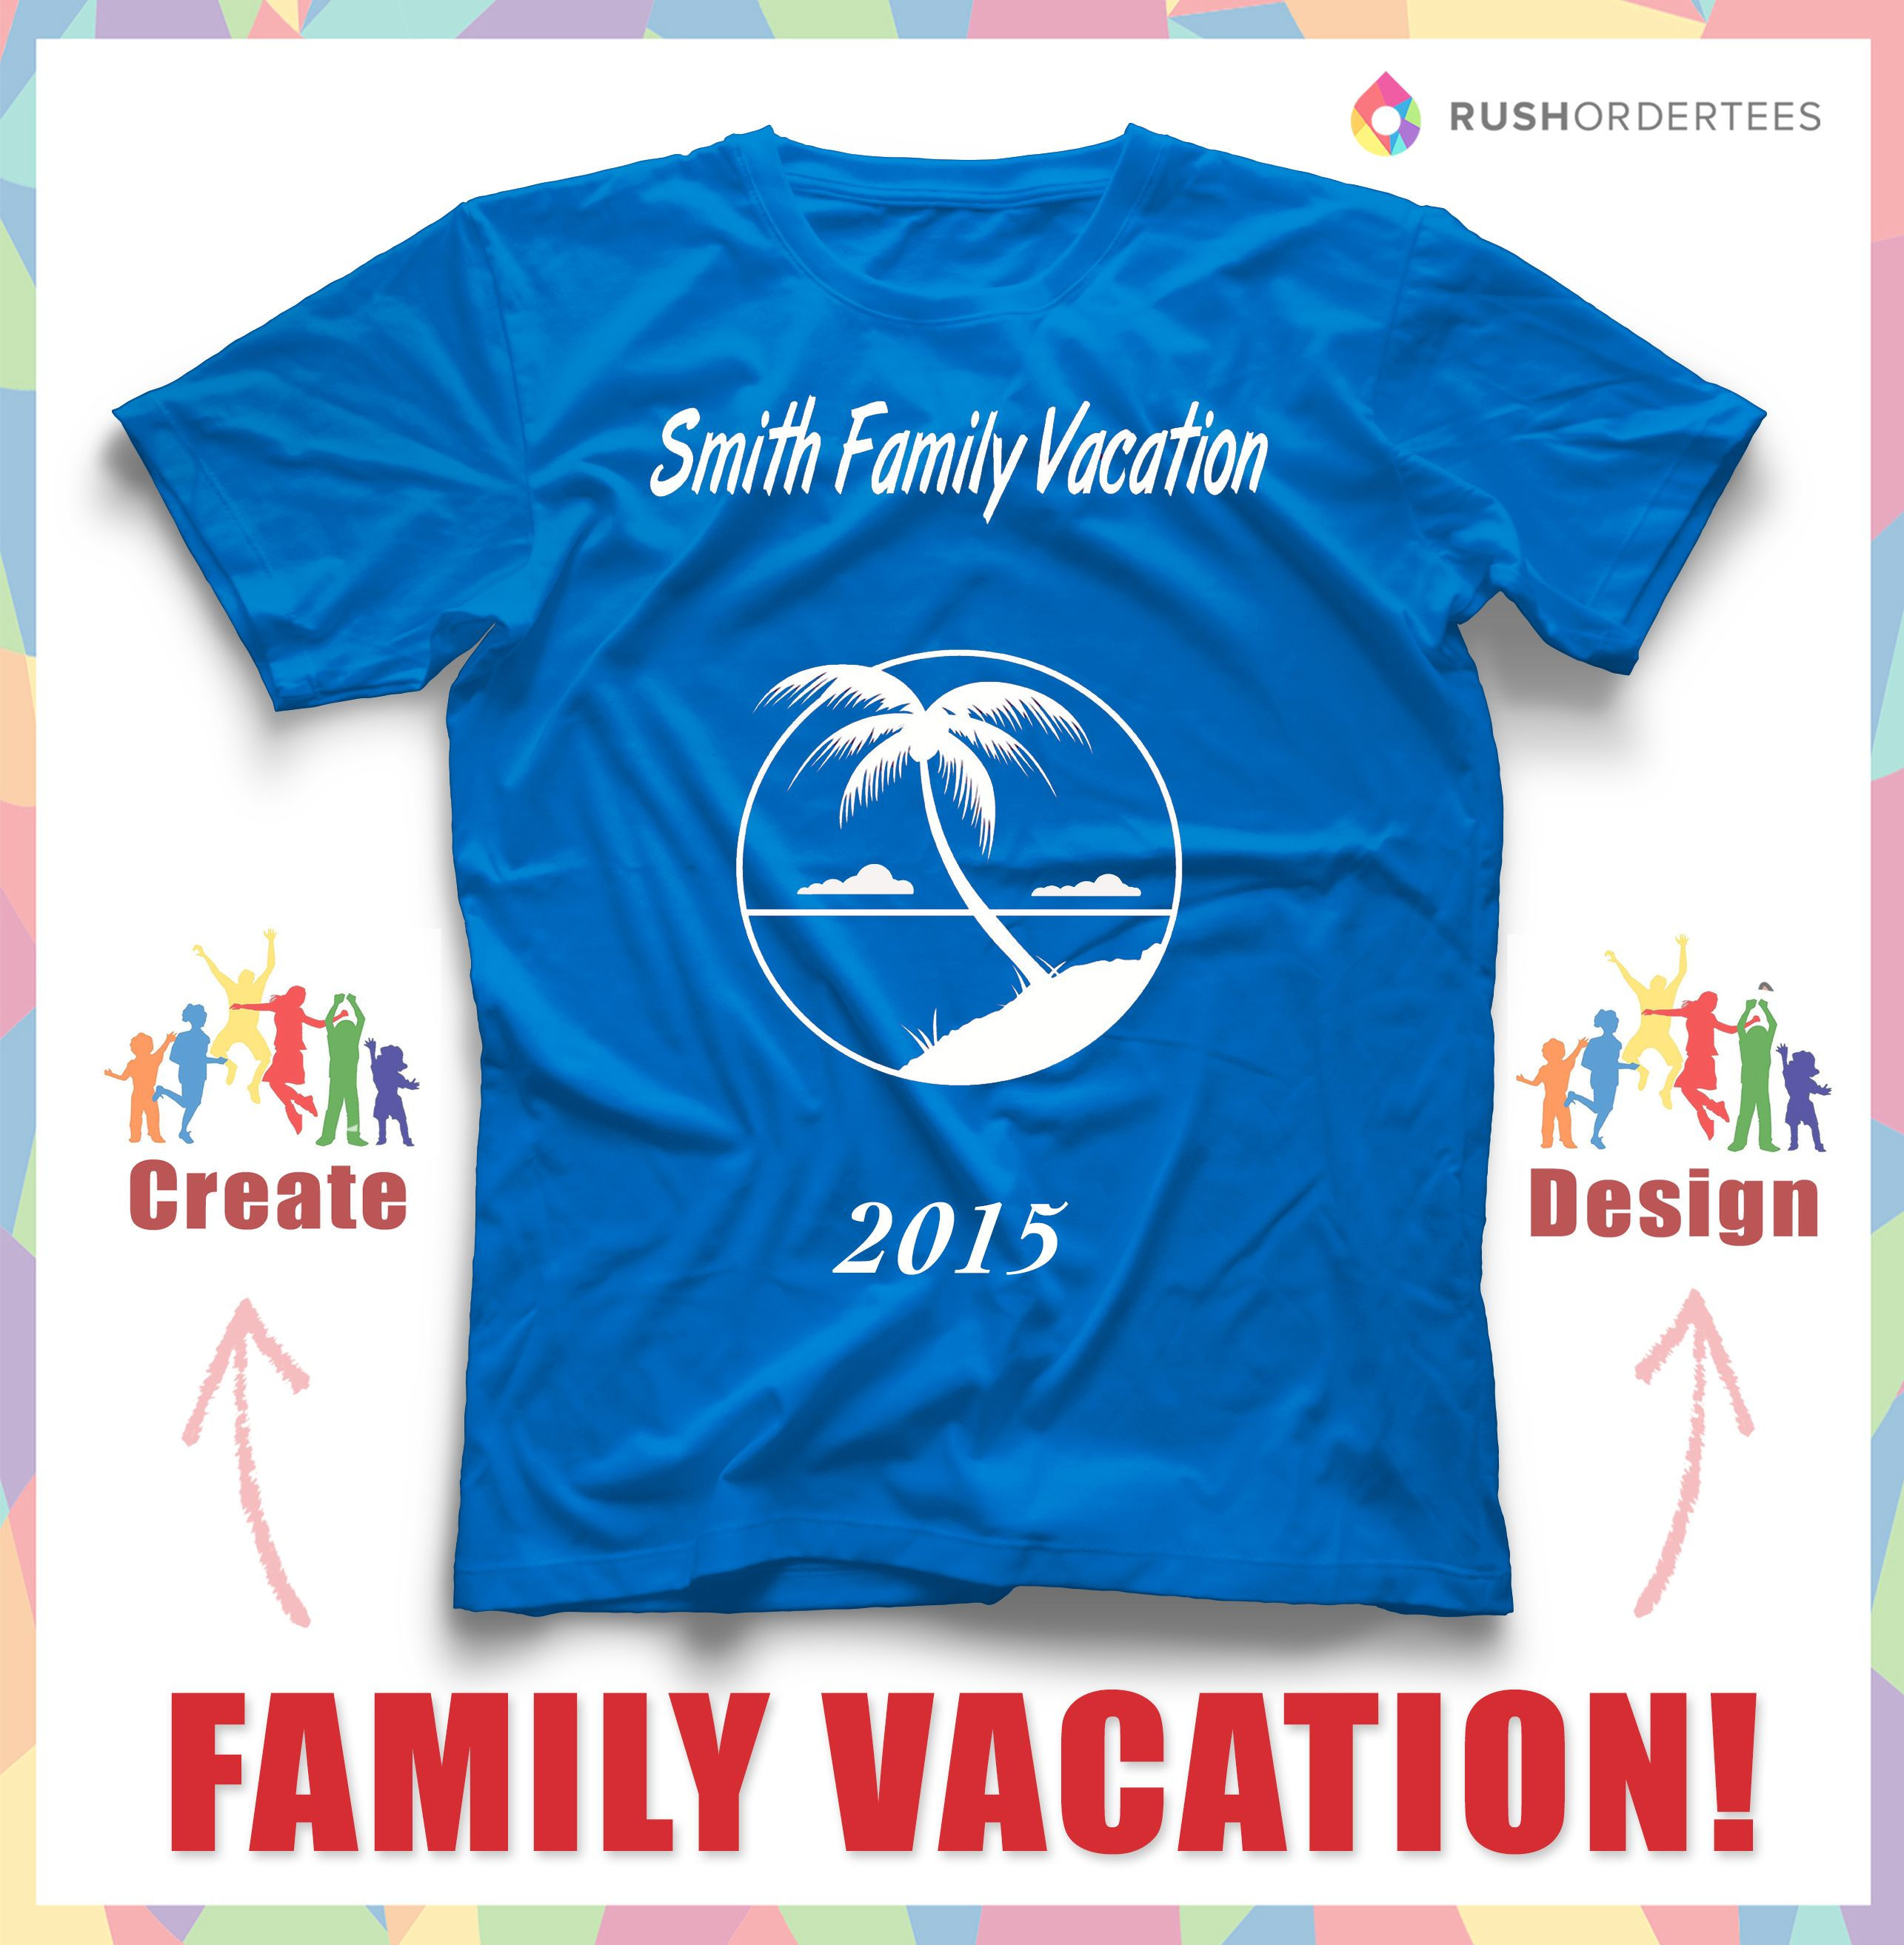 Design t shirt transfer template - Family Cruise Vacation Custom T Shirt Design Idea Create A Family Vacation Shirt Design